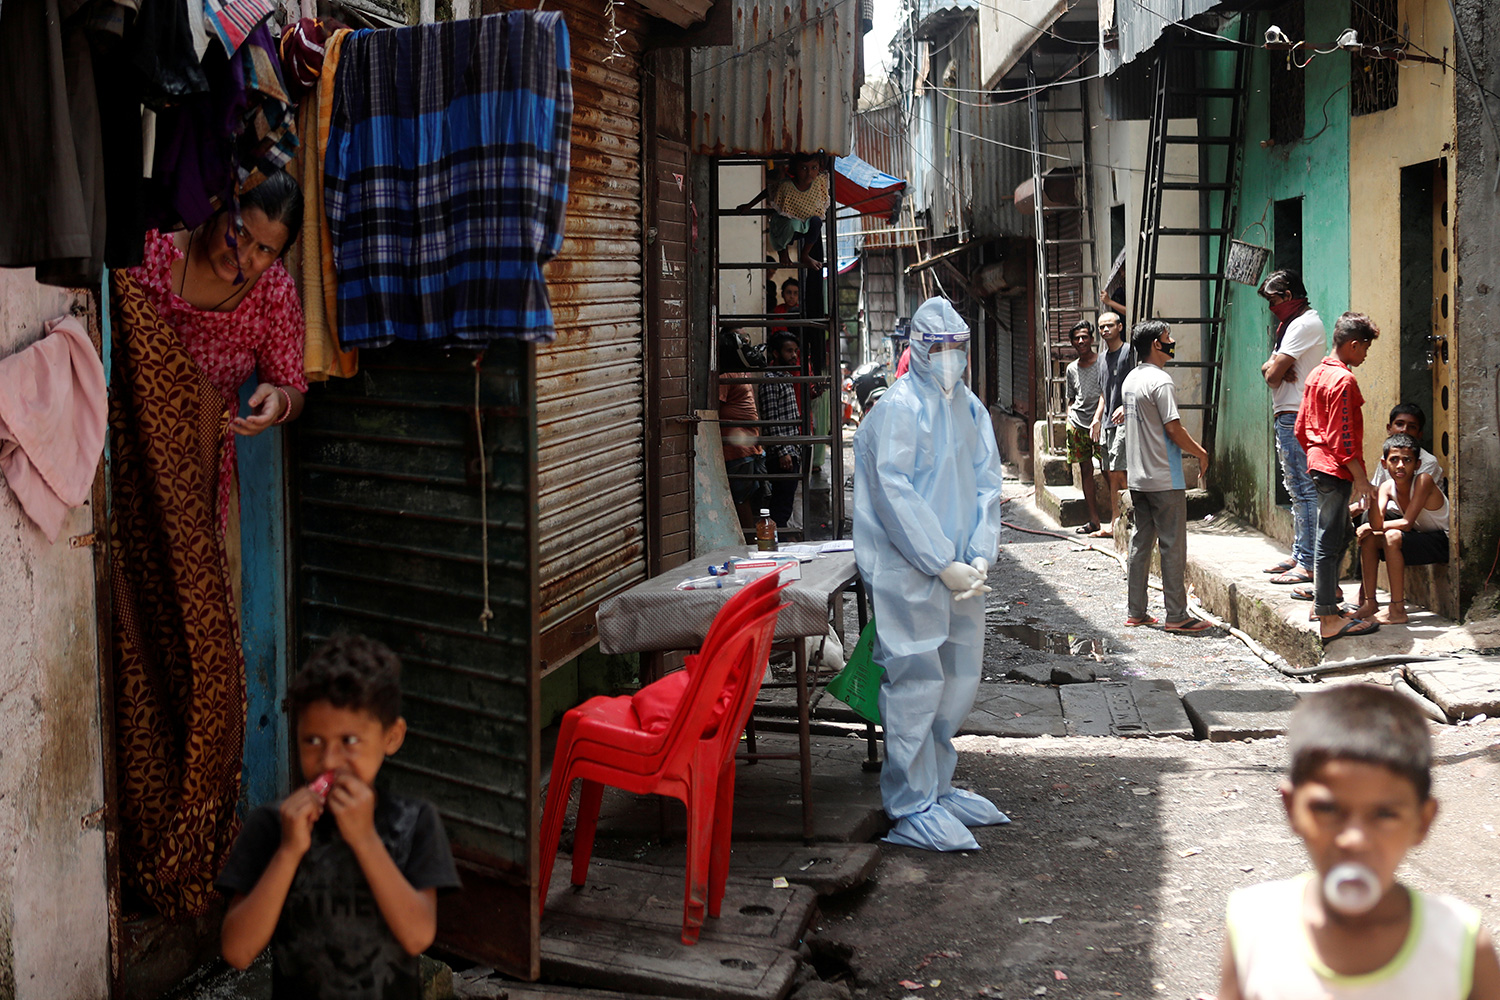 A health-care worker waits to test residents during a medical campaign for the coronavirus disease (COVID-19) at a slum area in Mumbai, India, June 30, 2020. The photo shows a worker wearing personal protective equipment standing awkwardly among residents, most of whom aren't even wearing a mask. REUTERS/Francis Mascarenhas